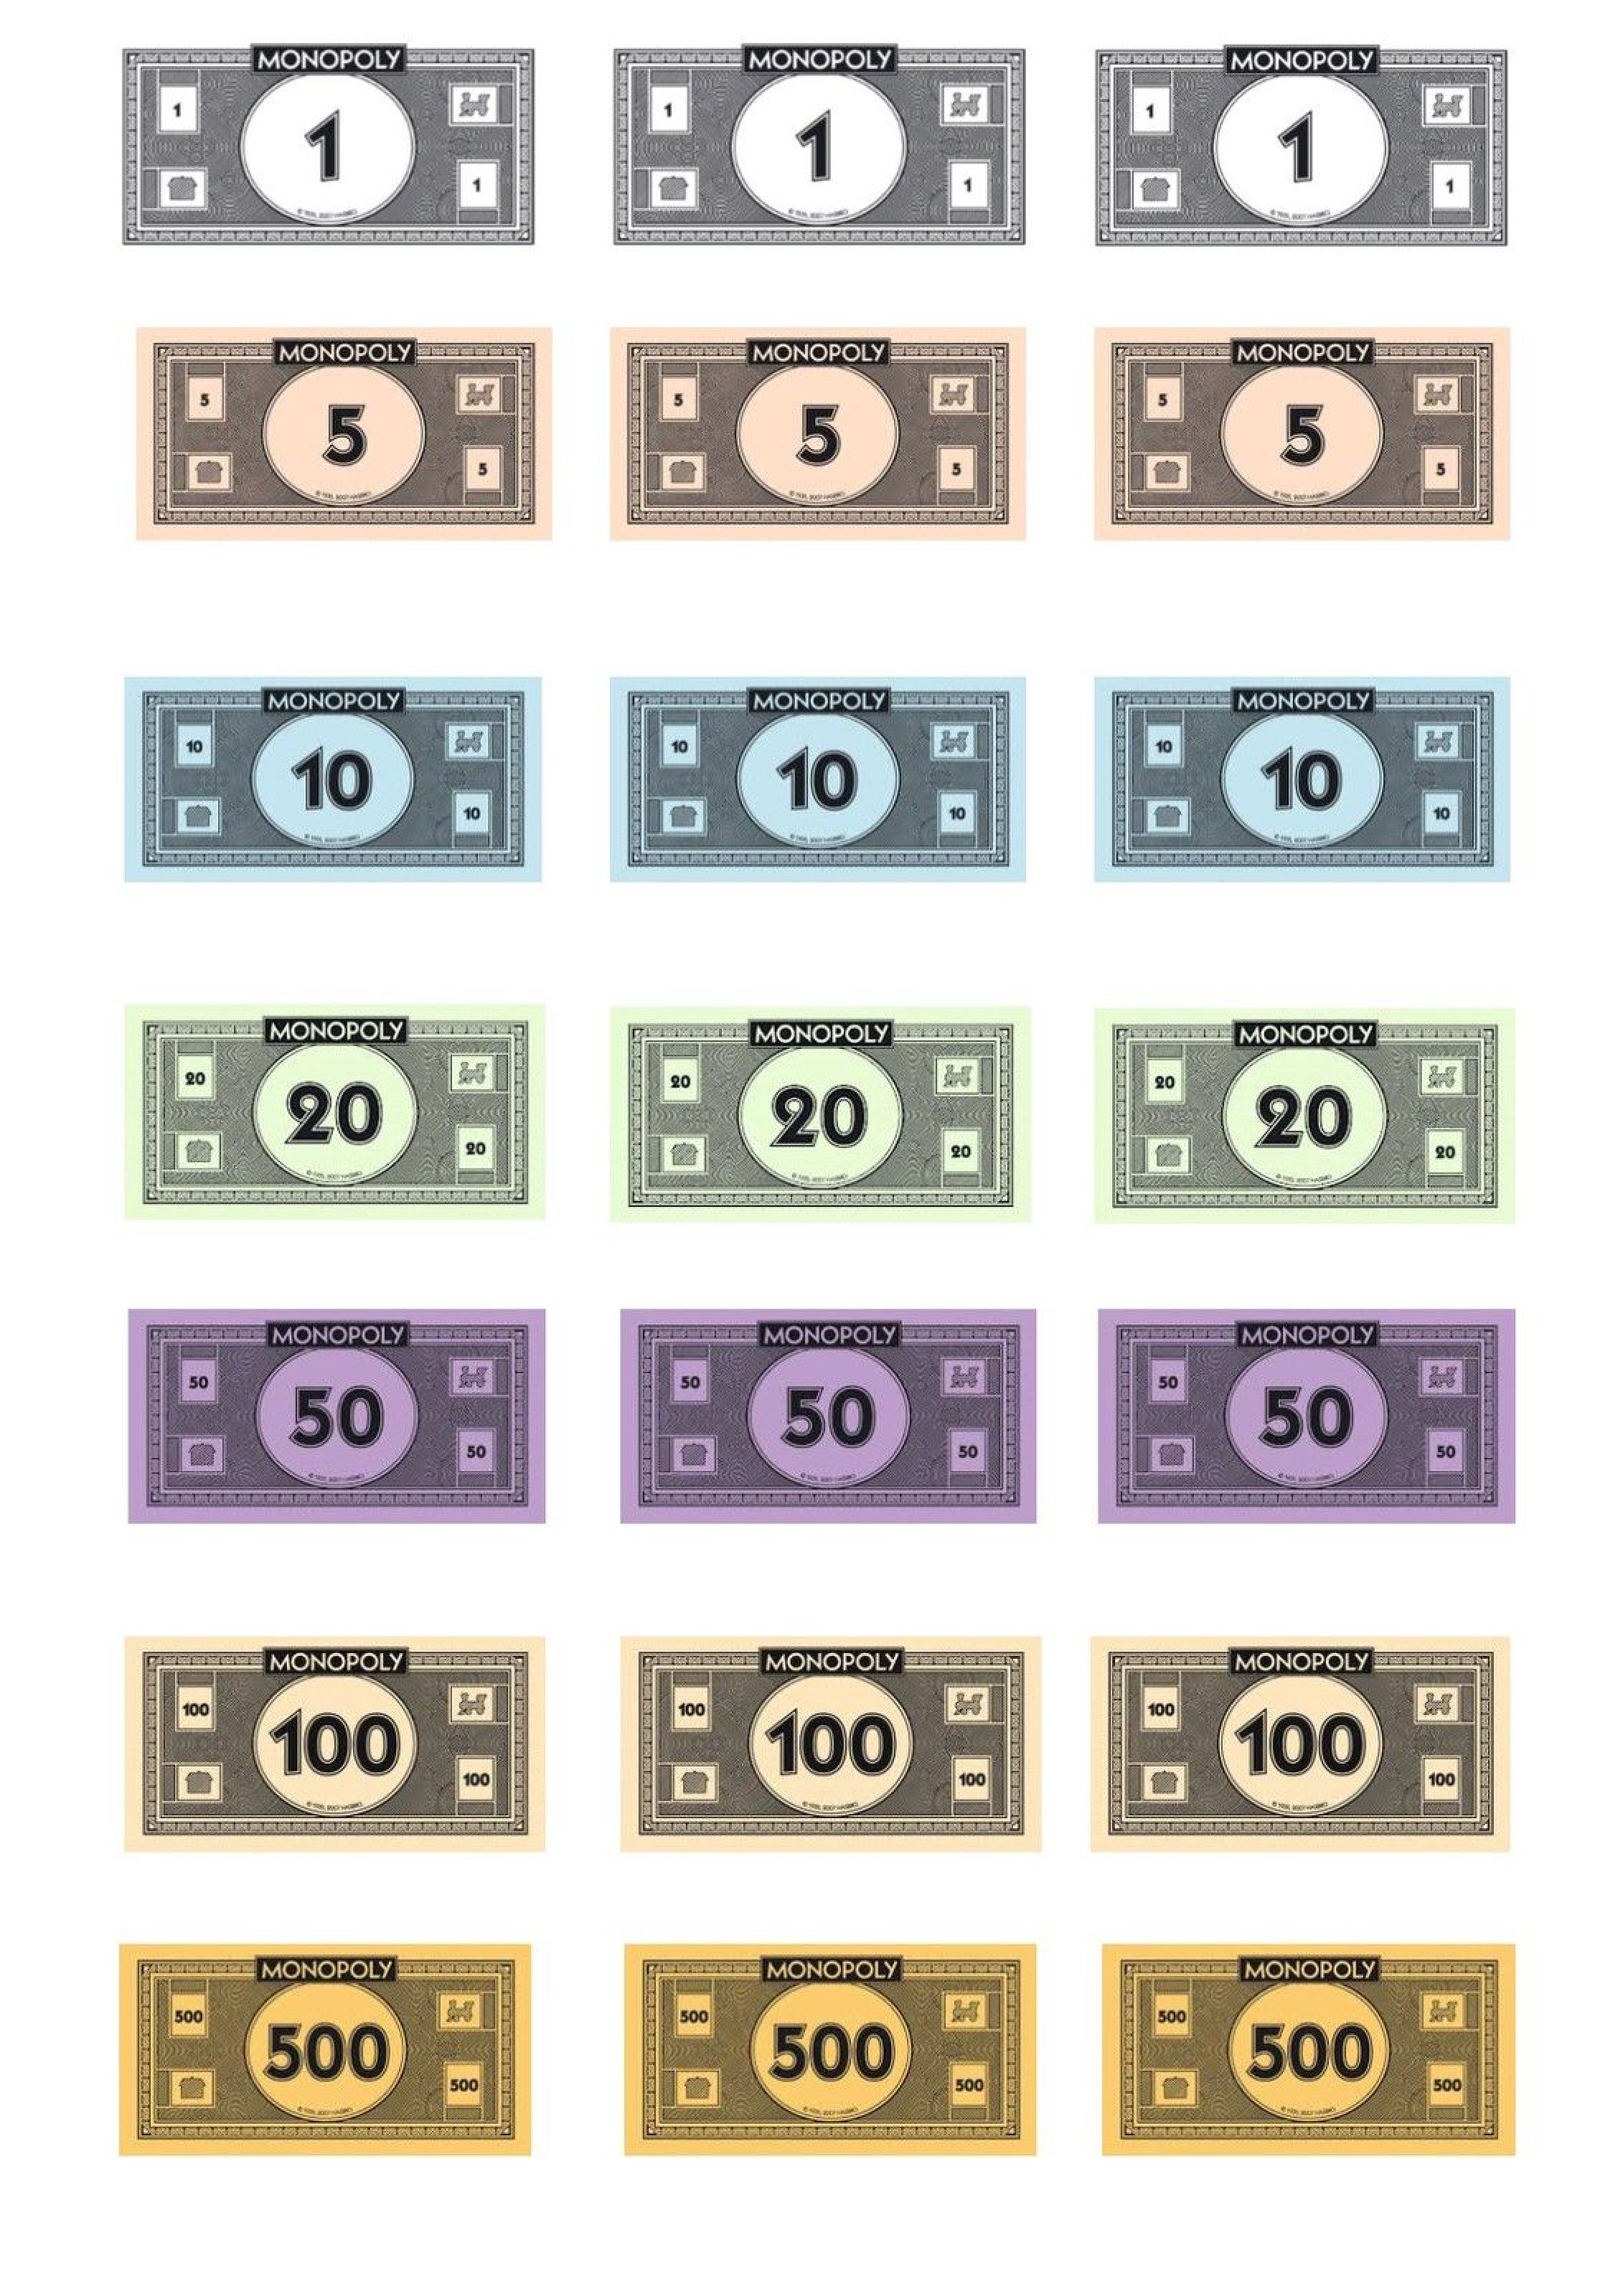 Free Monopoly Money template | Templates at allbusinesstemplates.com